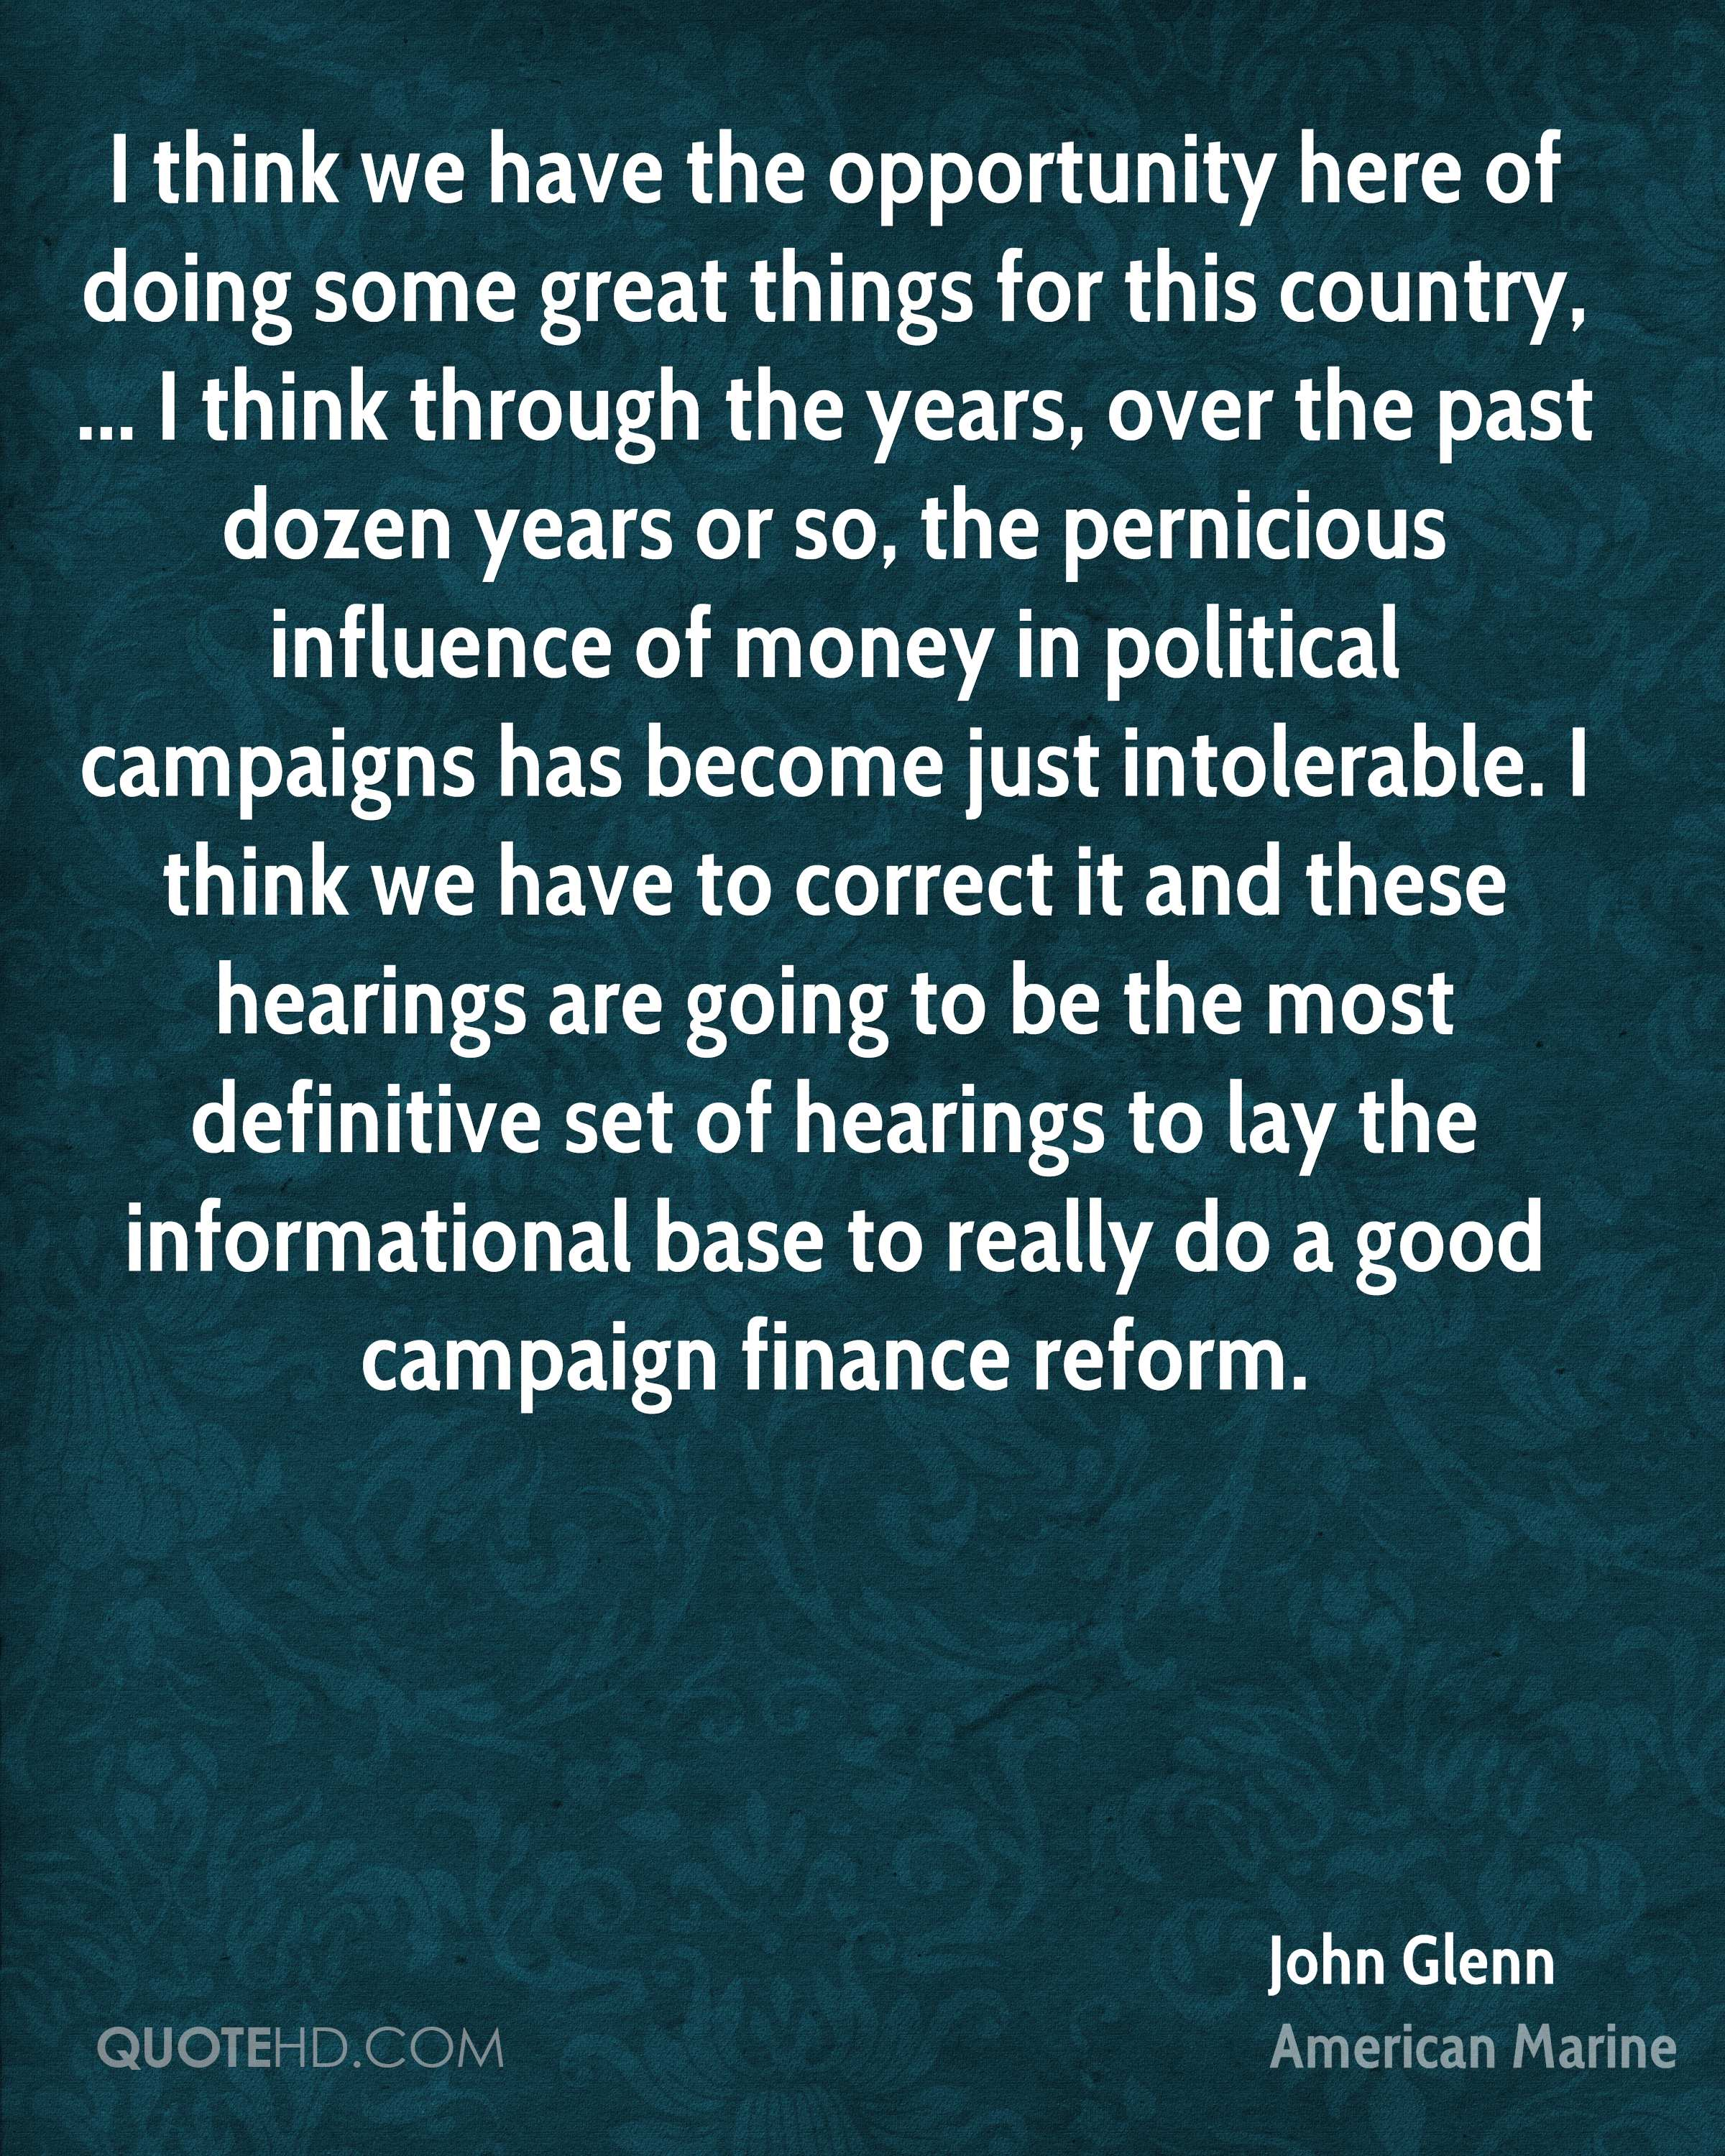 I think we have the opportunity here of doing some great things for this country, ... I think through the years, over the past dozen years or so, the pernicious influence of money in political campaigns has become just intolerable. I think we have to correct it and these hearings are going to be the most definitive set of hearings to lay the informational base to really do a good campaign finance reform.